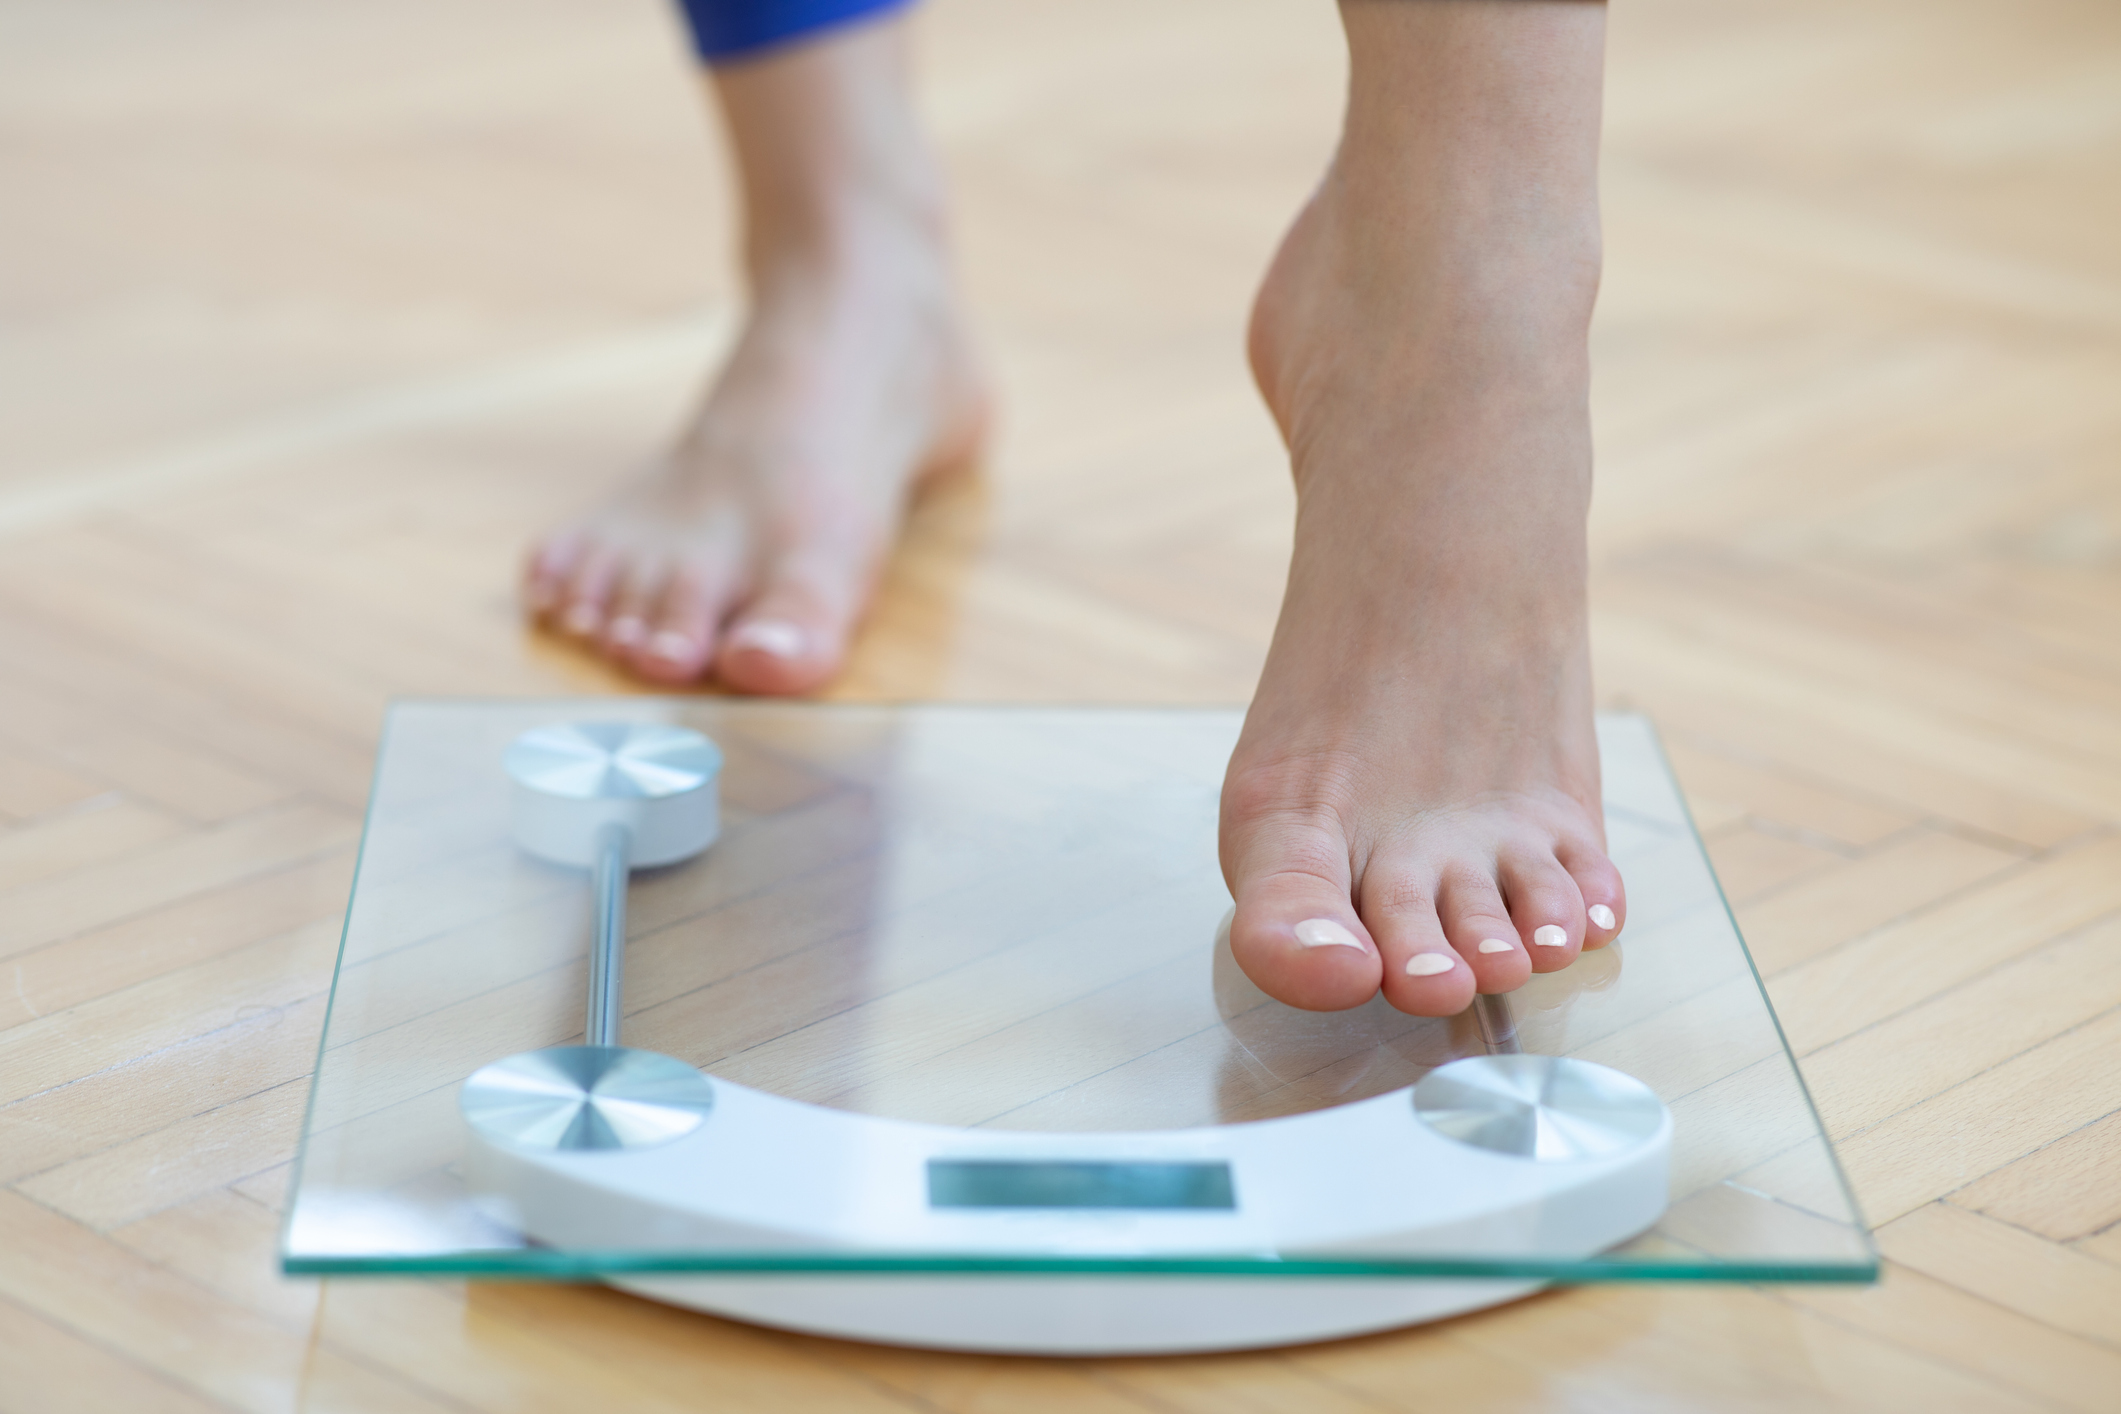 Weight loss Lutein supplements may enhance benefits of low-calorie diet: RCT thumbnail